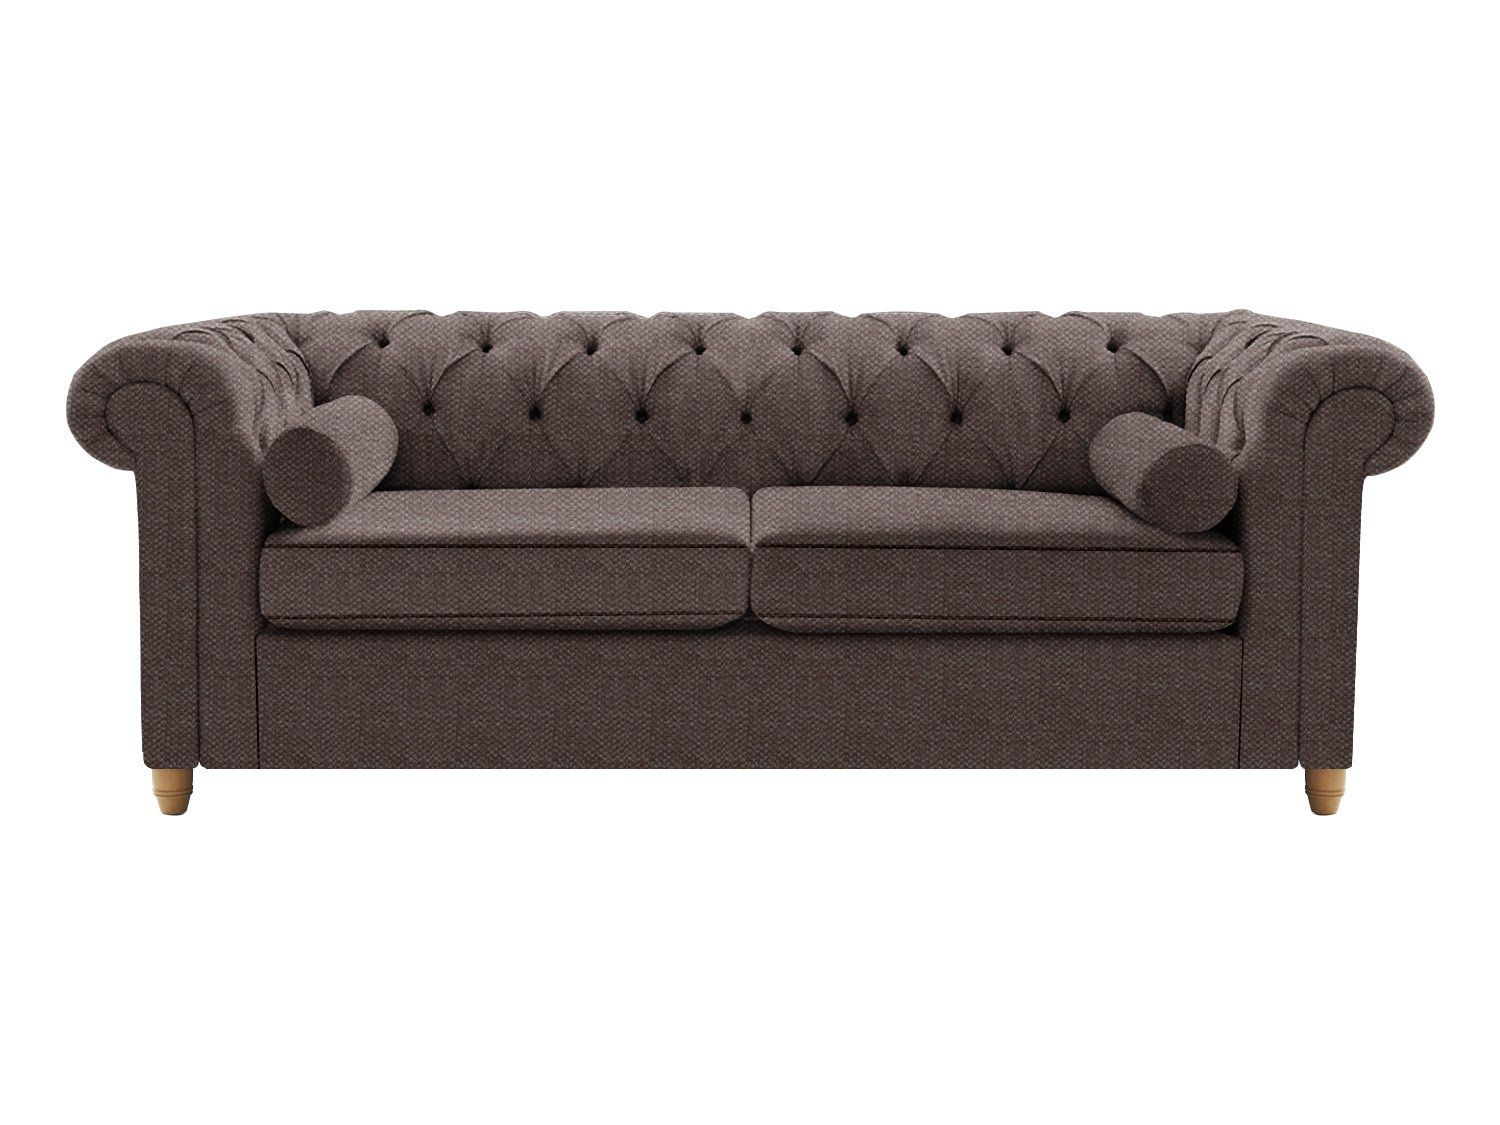 willow and hall sofa reviews comprar fundas de sofas baratas the bulford room scratch all other this seems